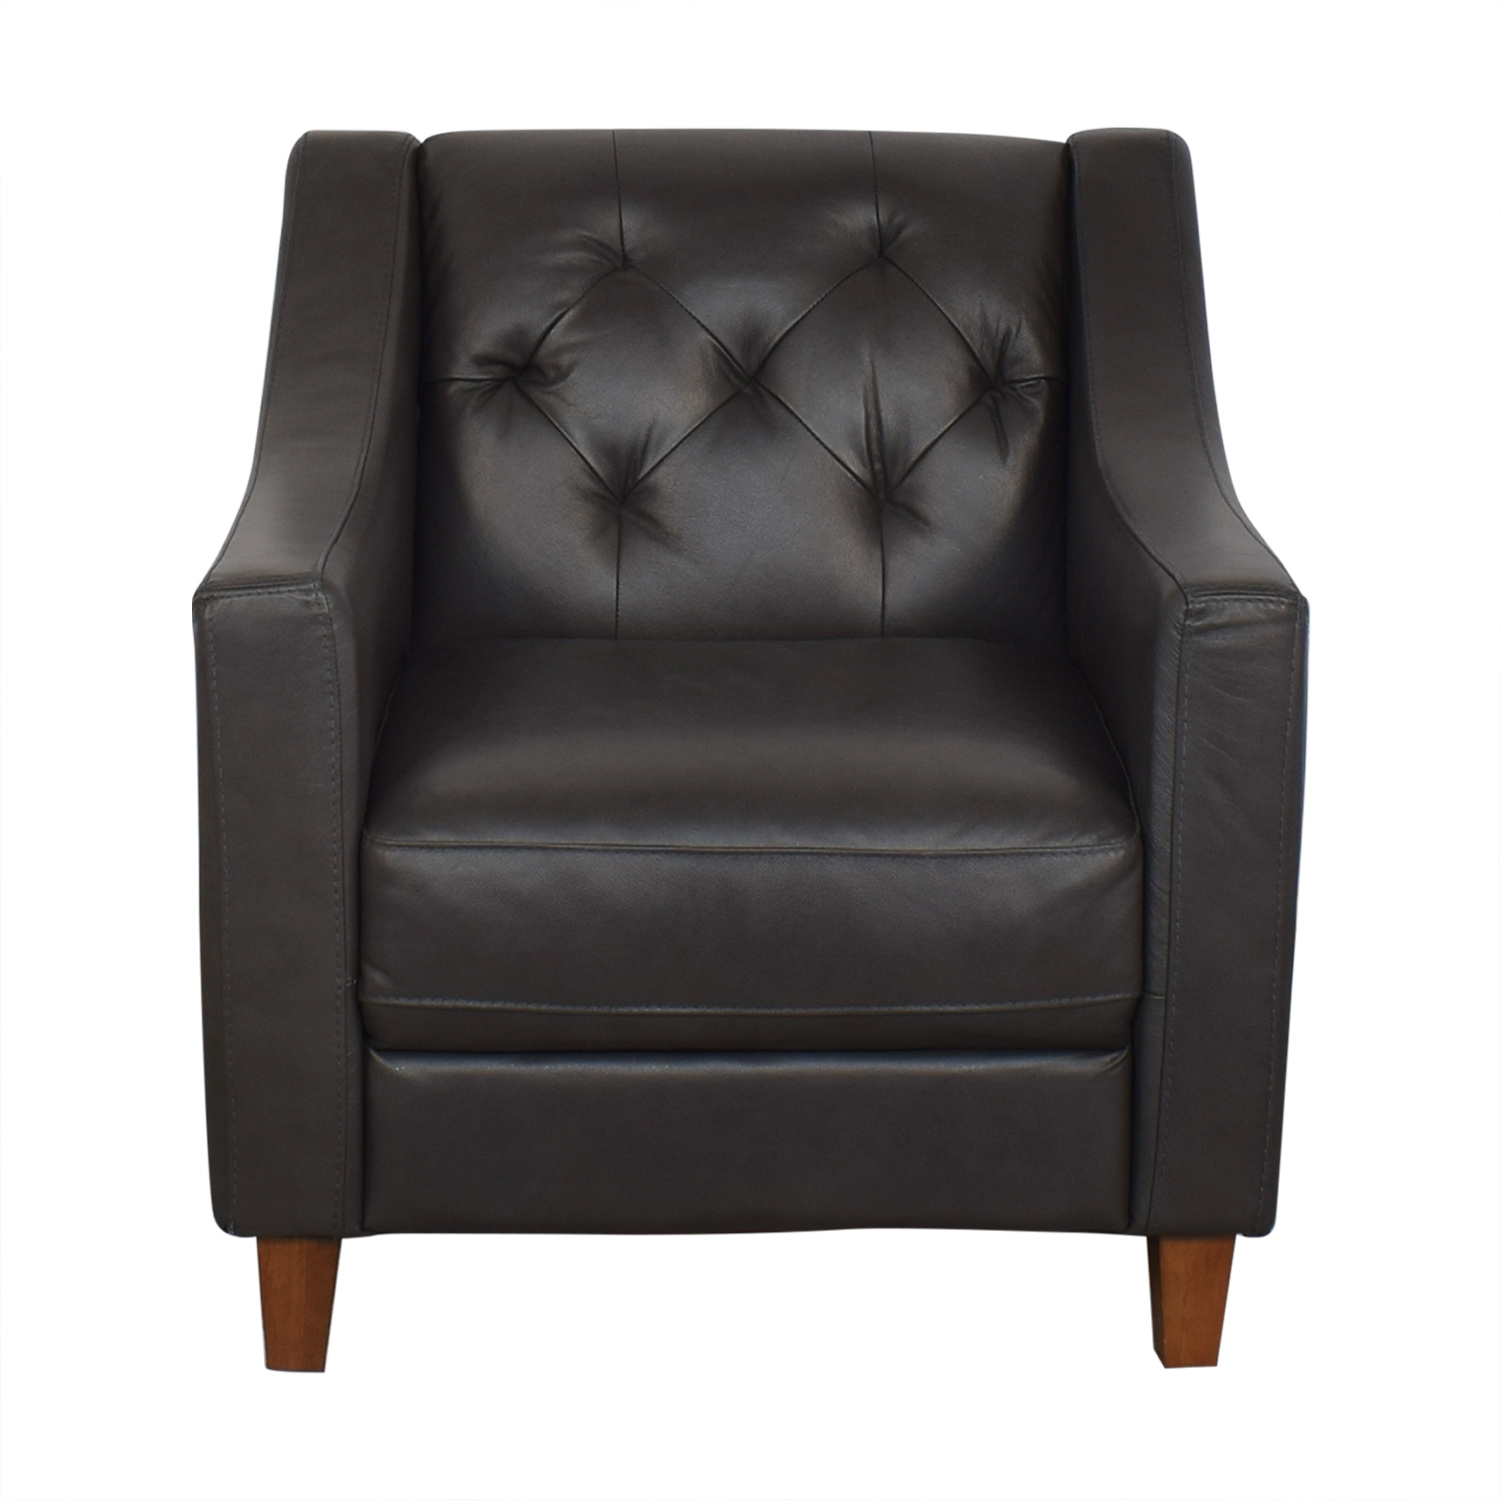 buy Macy's Chateau d'Ax Arm Chair Macy's Accent Chairs